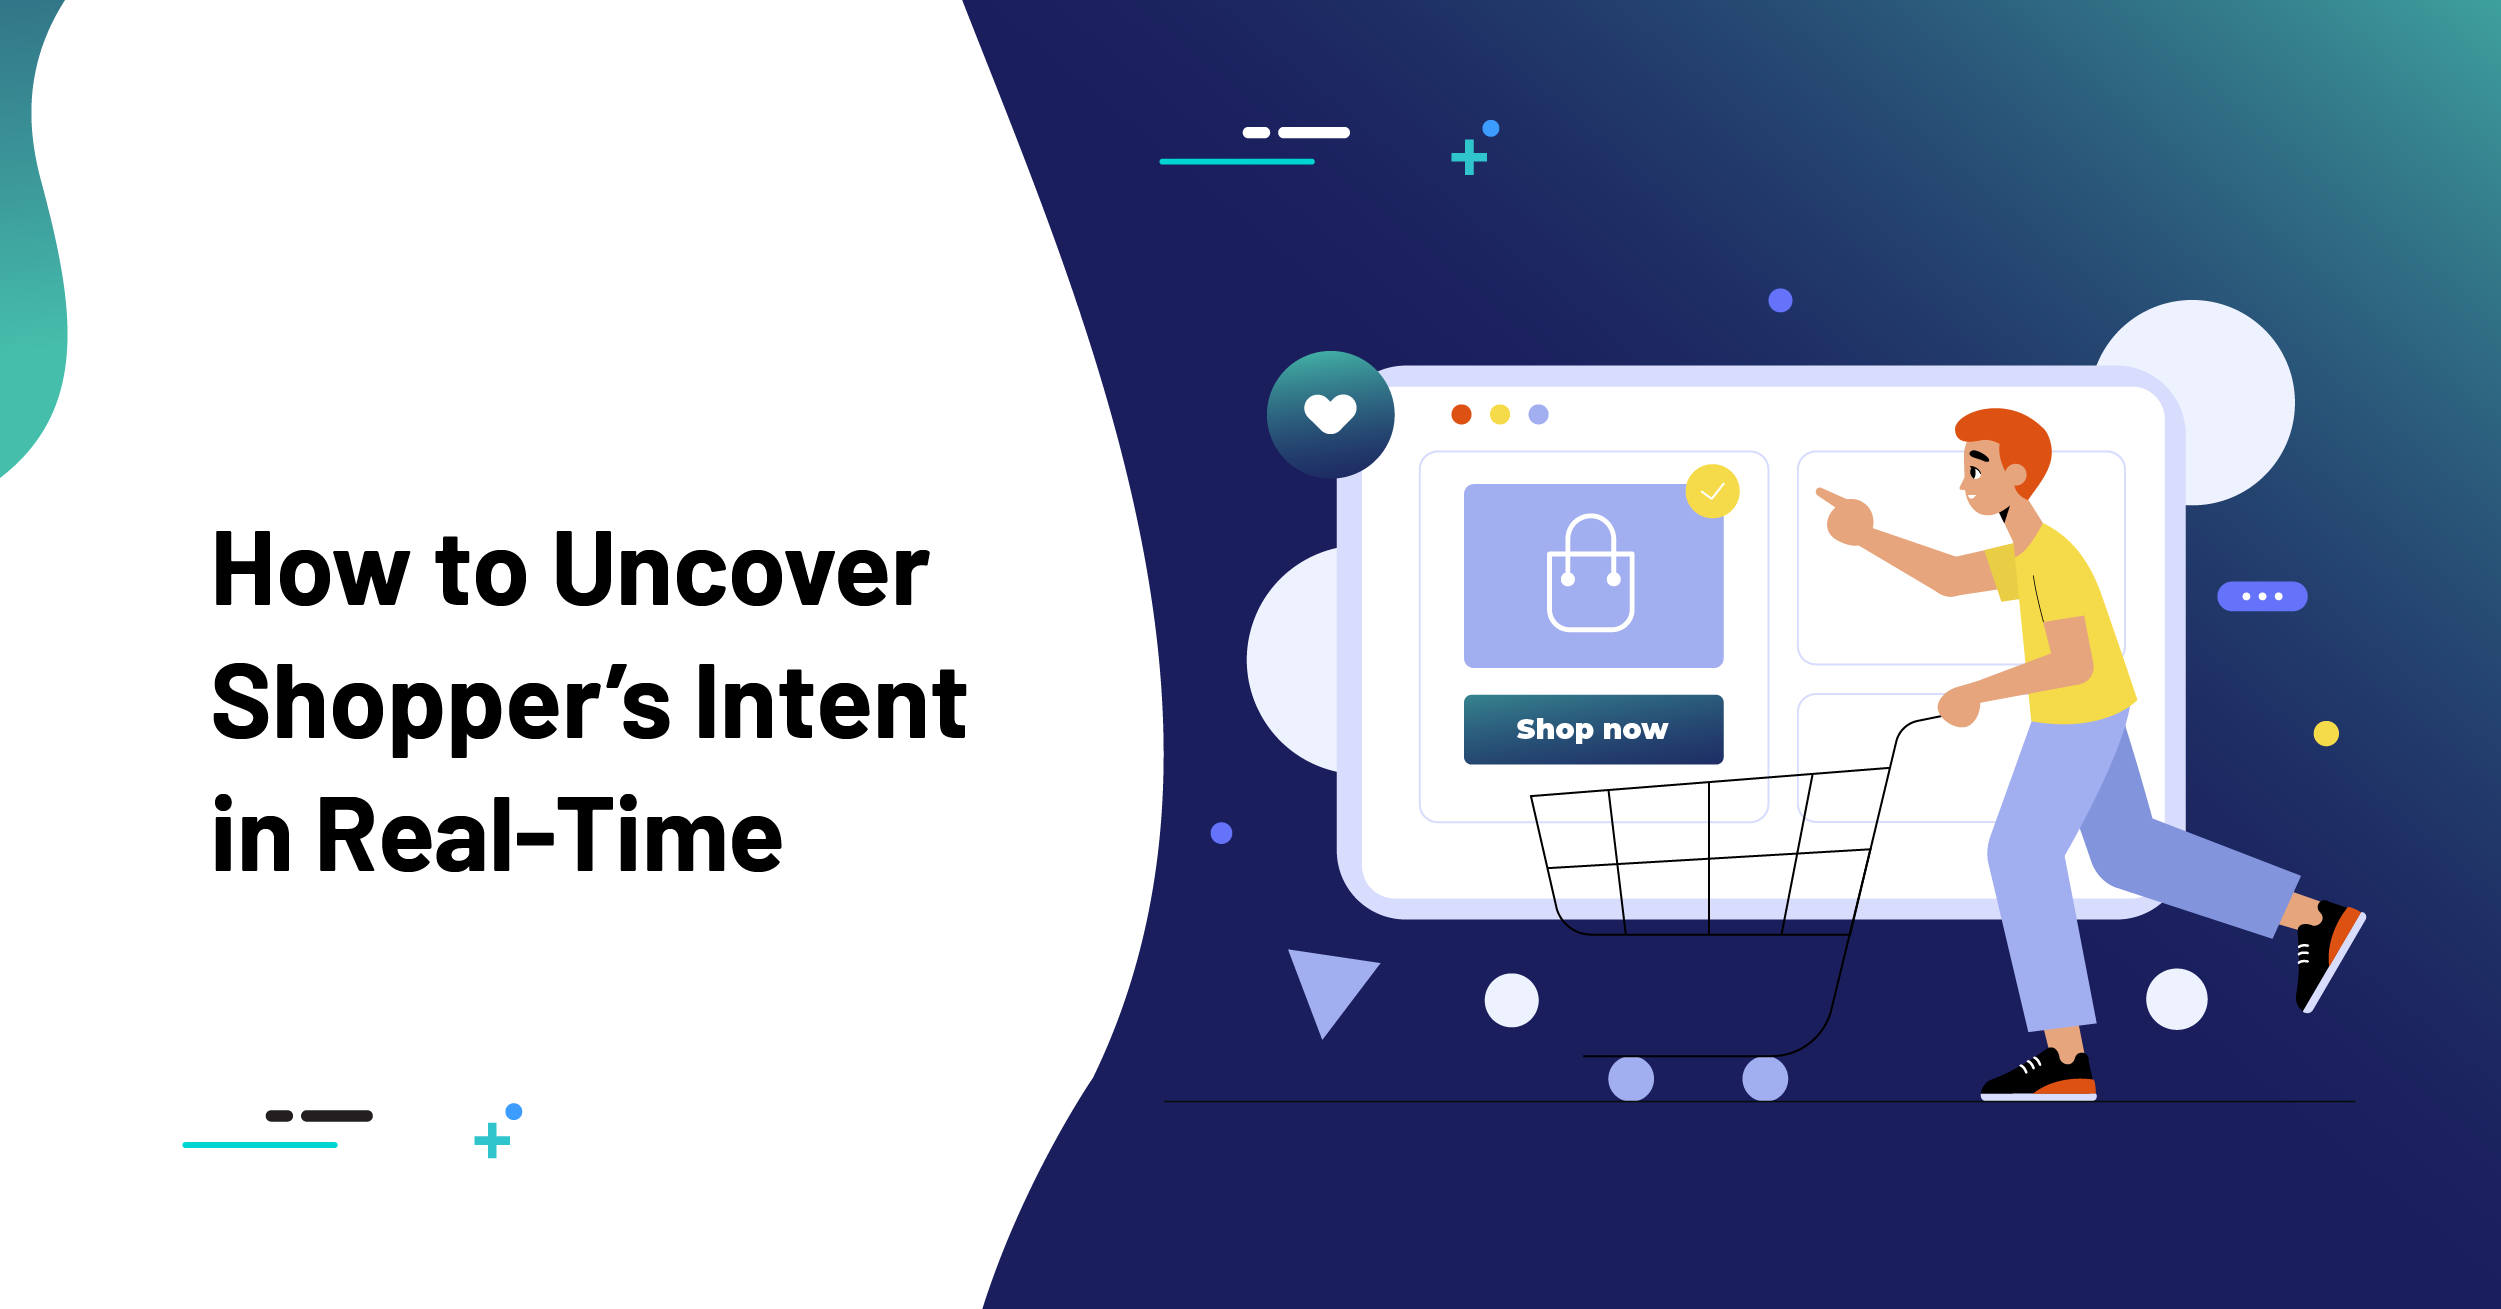 How to Uncover Shopper's Intent in Real-Time